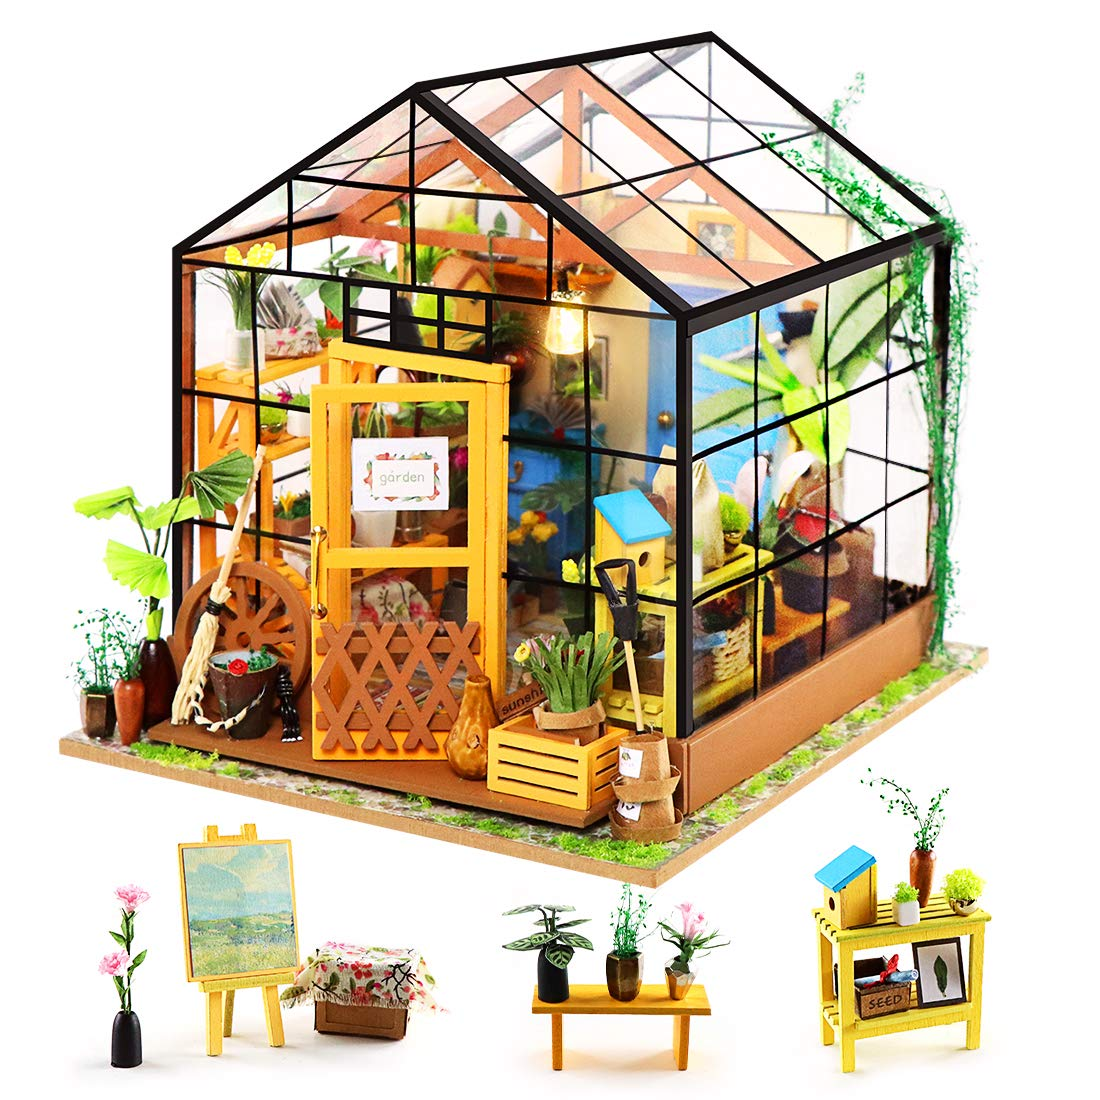 ZNCMRR DIY Miniature Dollhouse Wooden Set - 3D Wooden Puzzle Garden House with LED, Green Crafts, Mini Furniture Kit, Creative Birthday Gift for Women and Girls (Garden House)